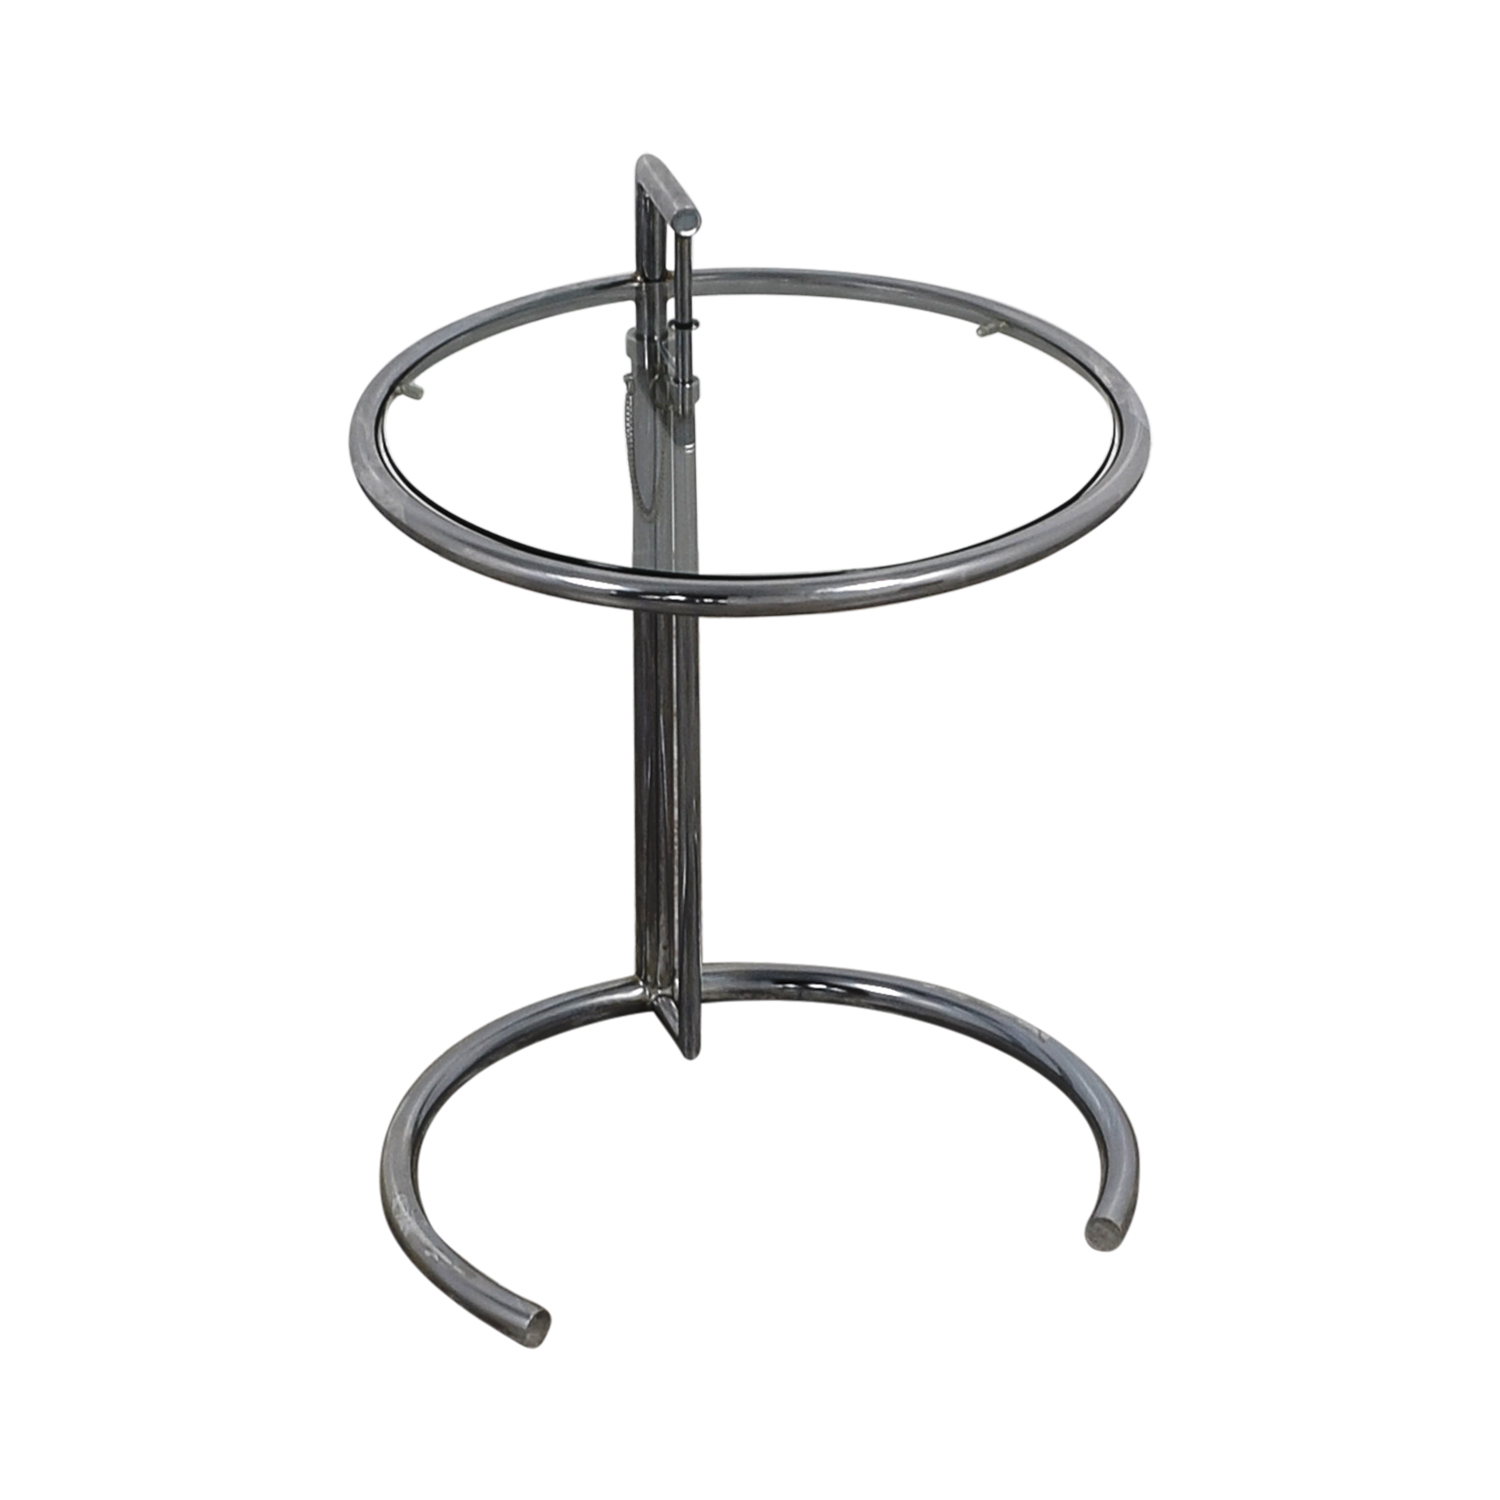 Eileen Gray Eileen Gray Round Glass and Metal Side Table second hand